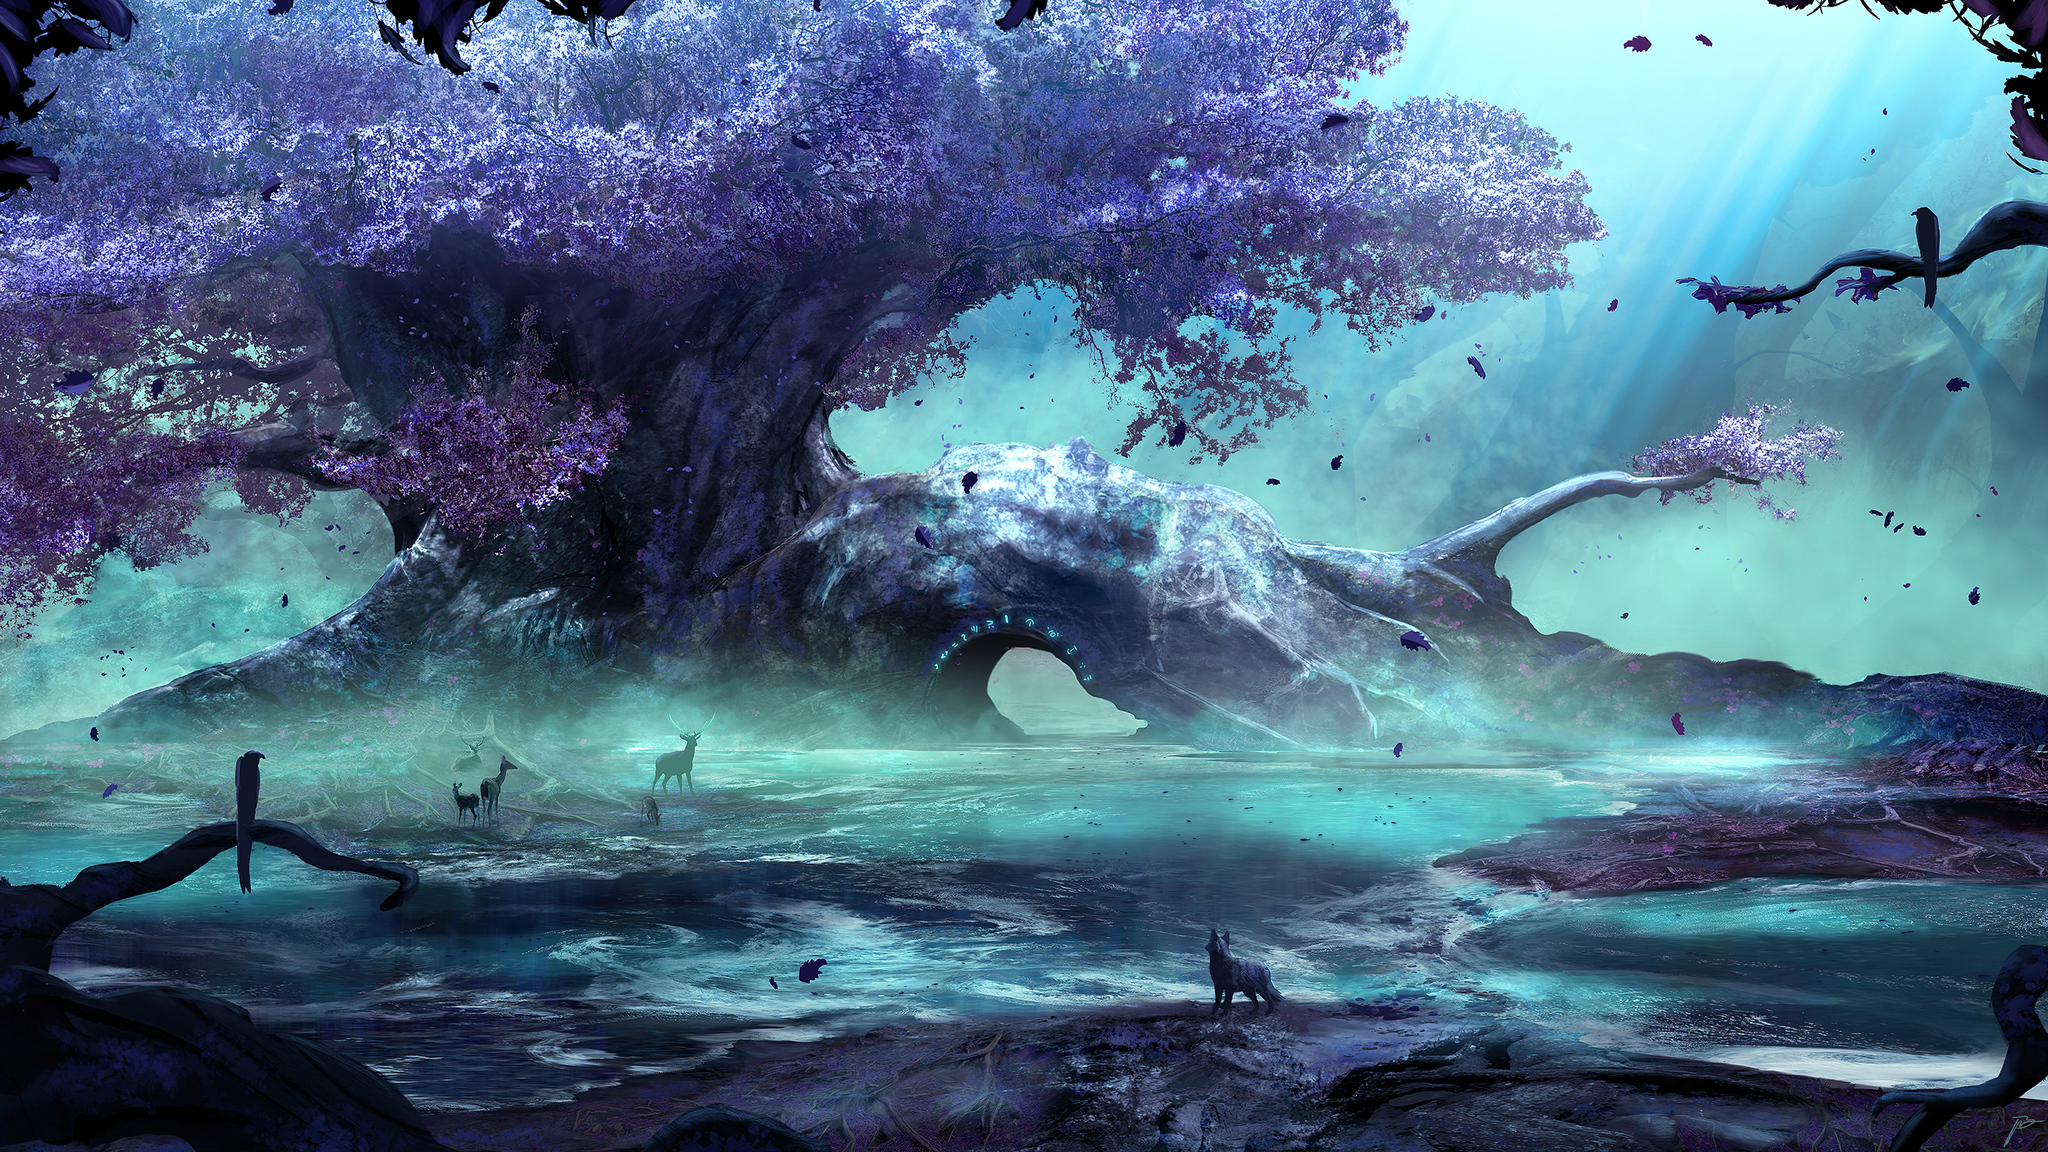 2048x1152 Fantasy Art Creatures Forest 4k 2048x1152 Resolution Hd 4k Wallpapers Images Backgrounds Photos And Pictures